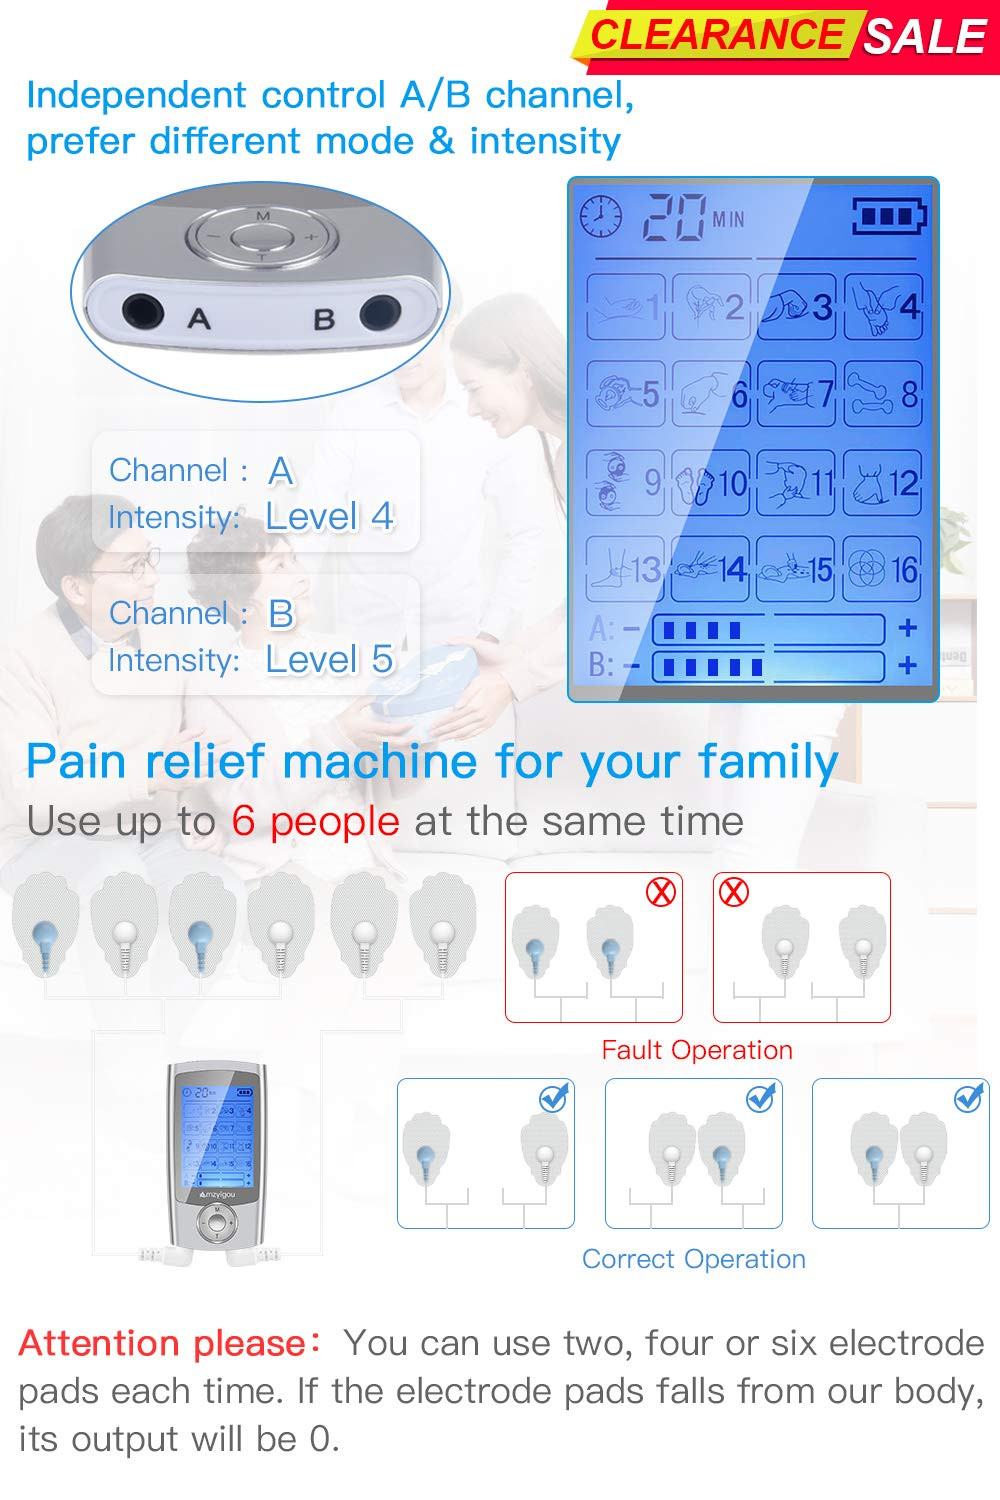 electrotherapy electrodes Muscle Stimulation Neck Massage White Ischia Pain Massager 16 Modes and 2 Output Channels for The Treatment of Kinks on The Back Shoulders electrostimulation